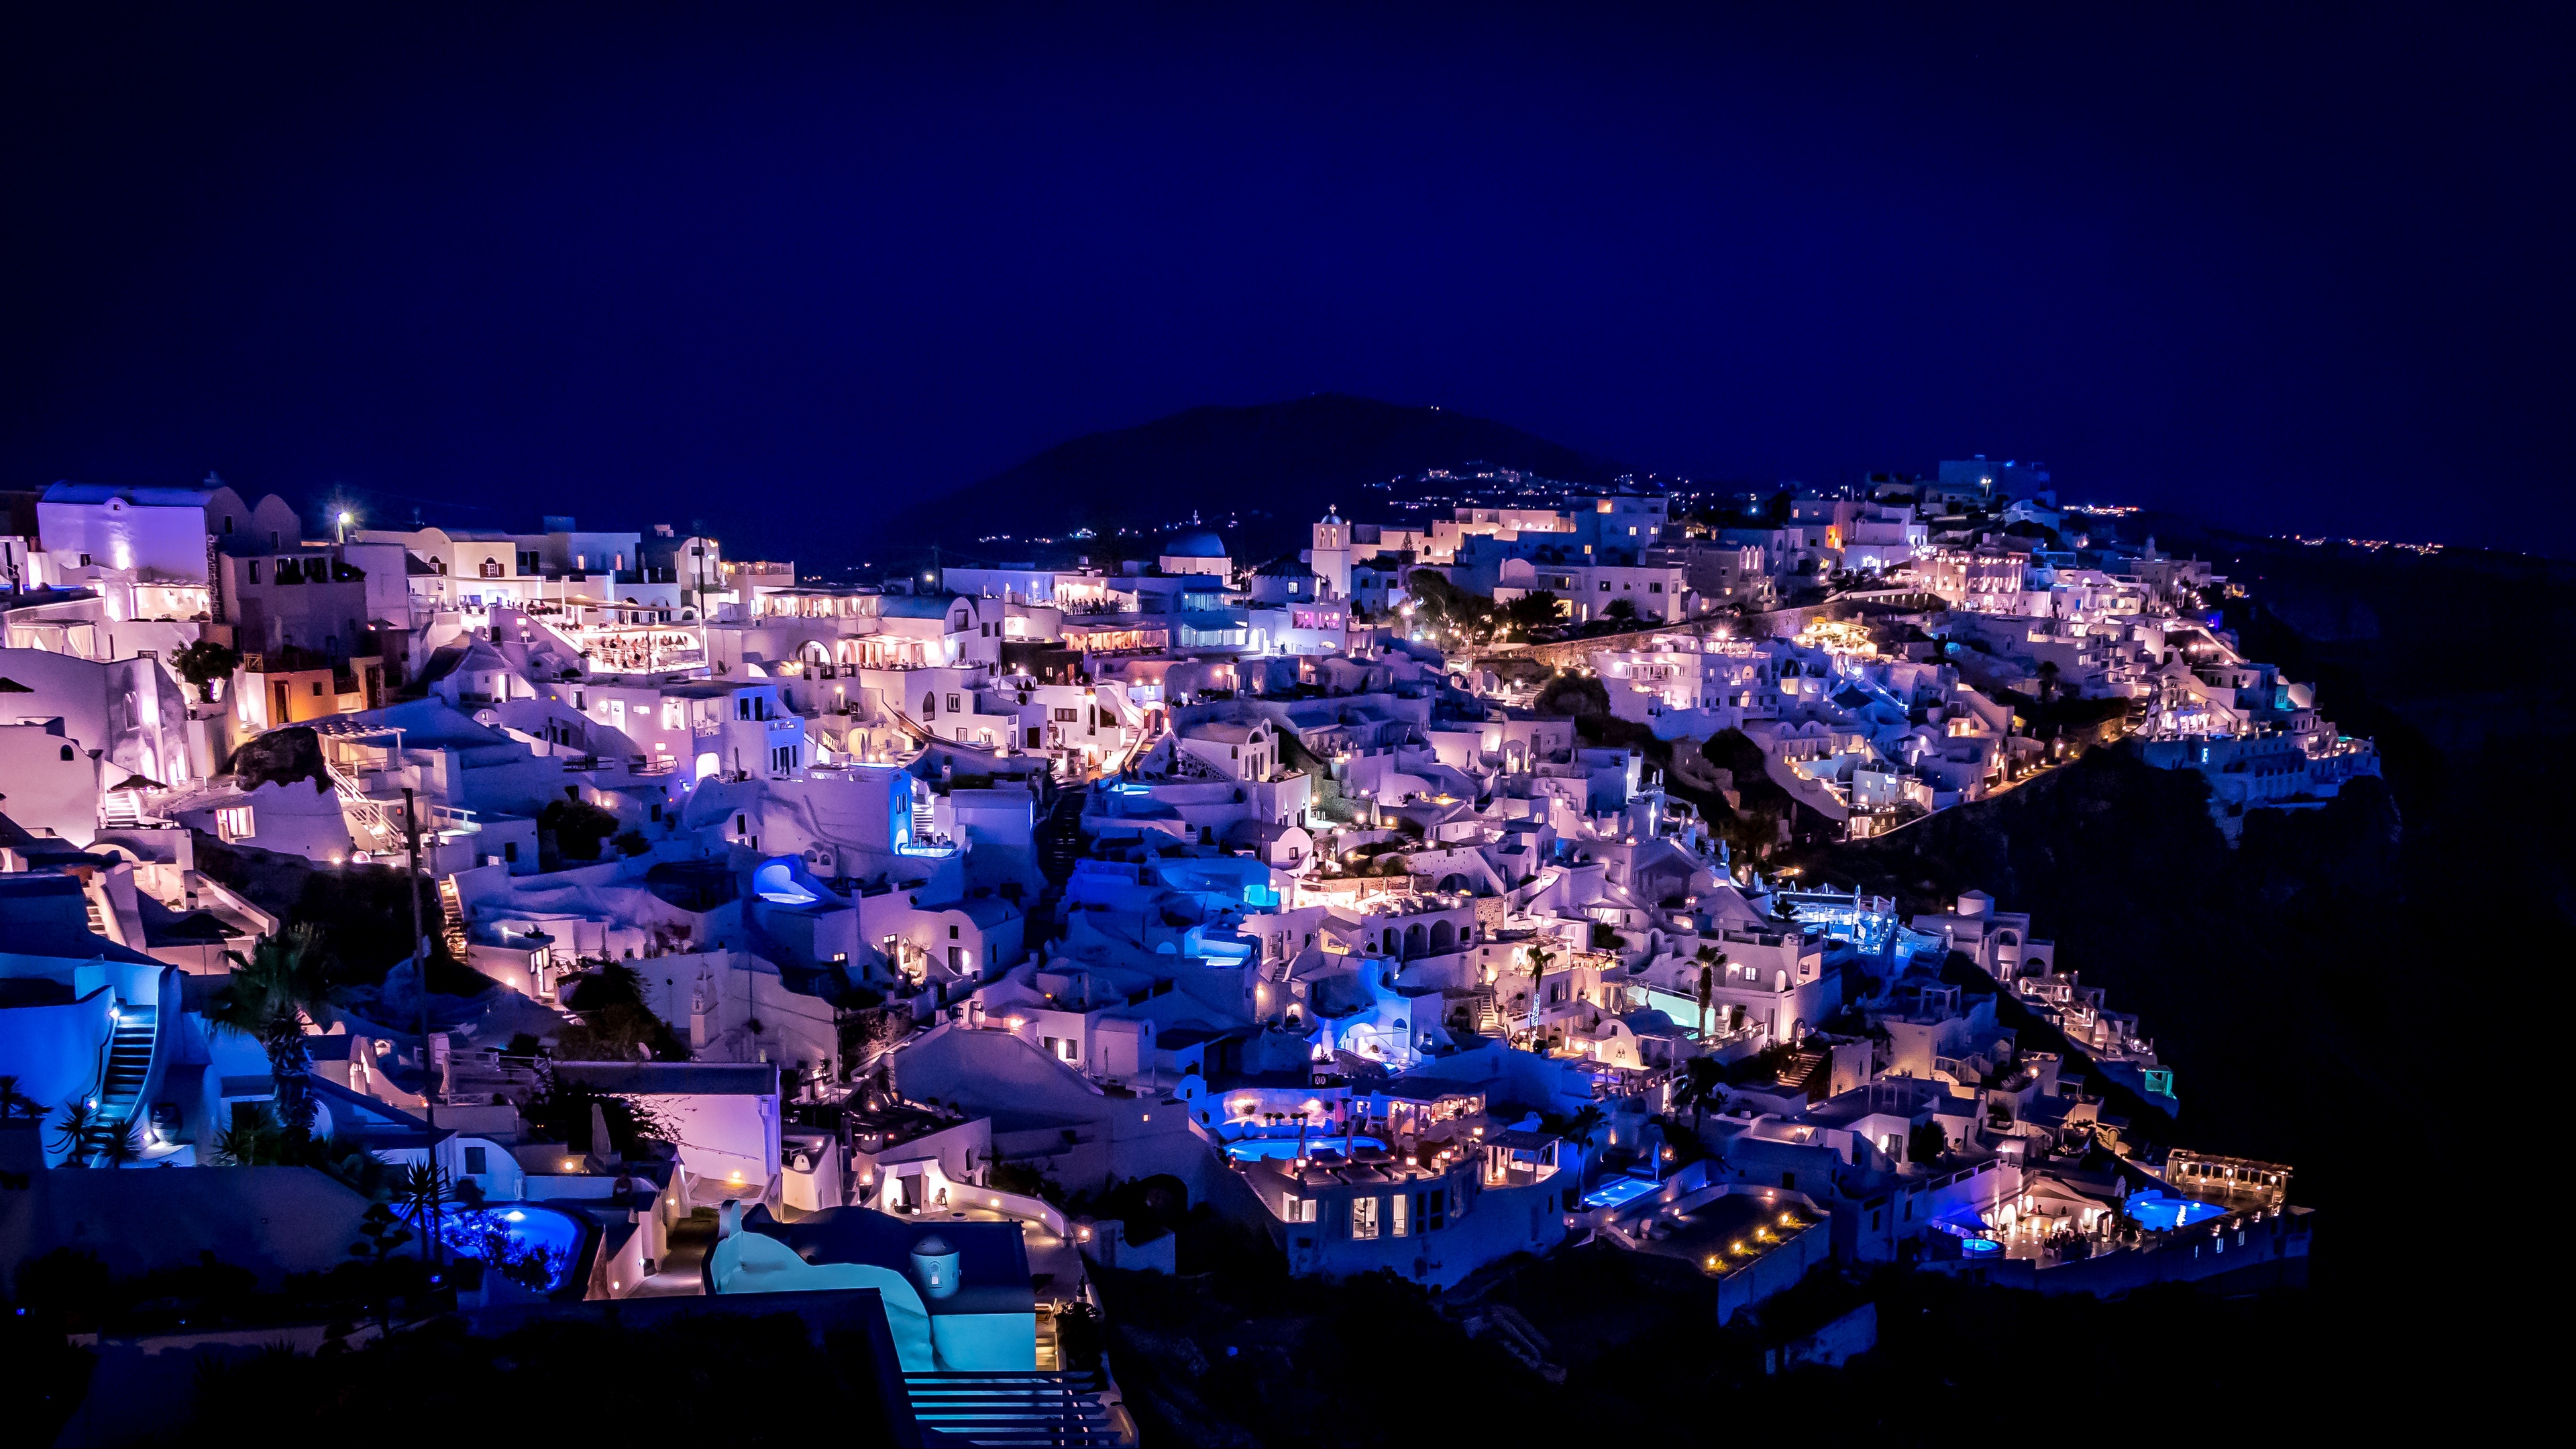 Download wallpaper 3840x2160 santorini greece night city 3840x2160